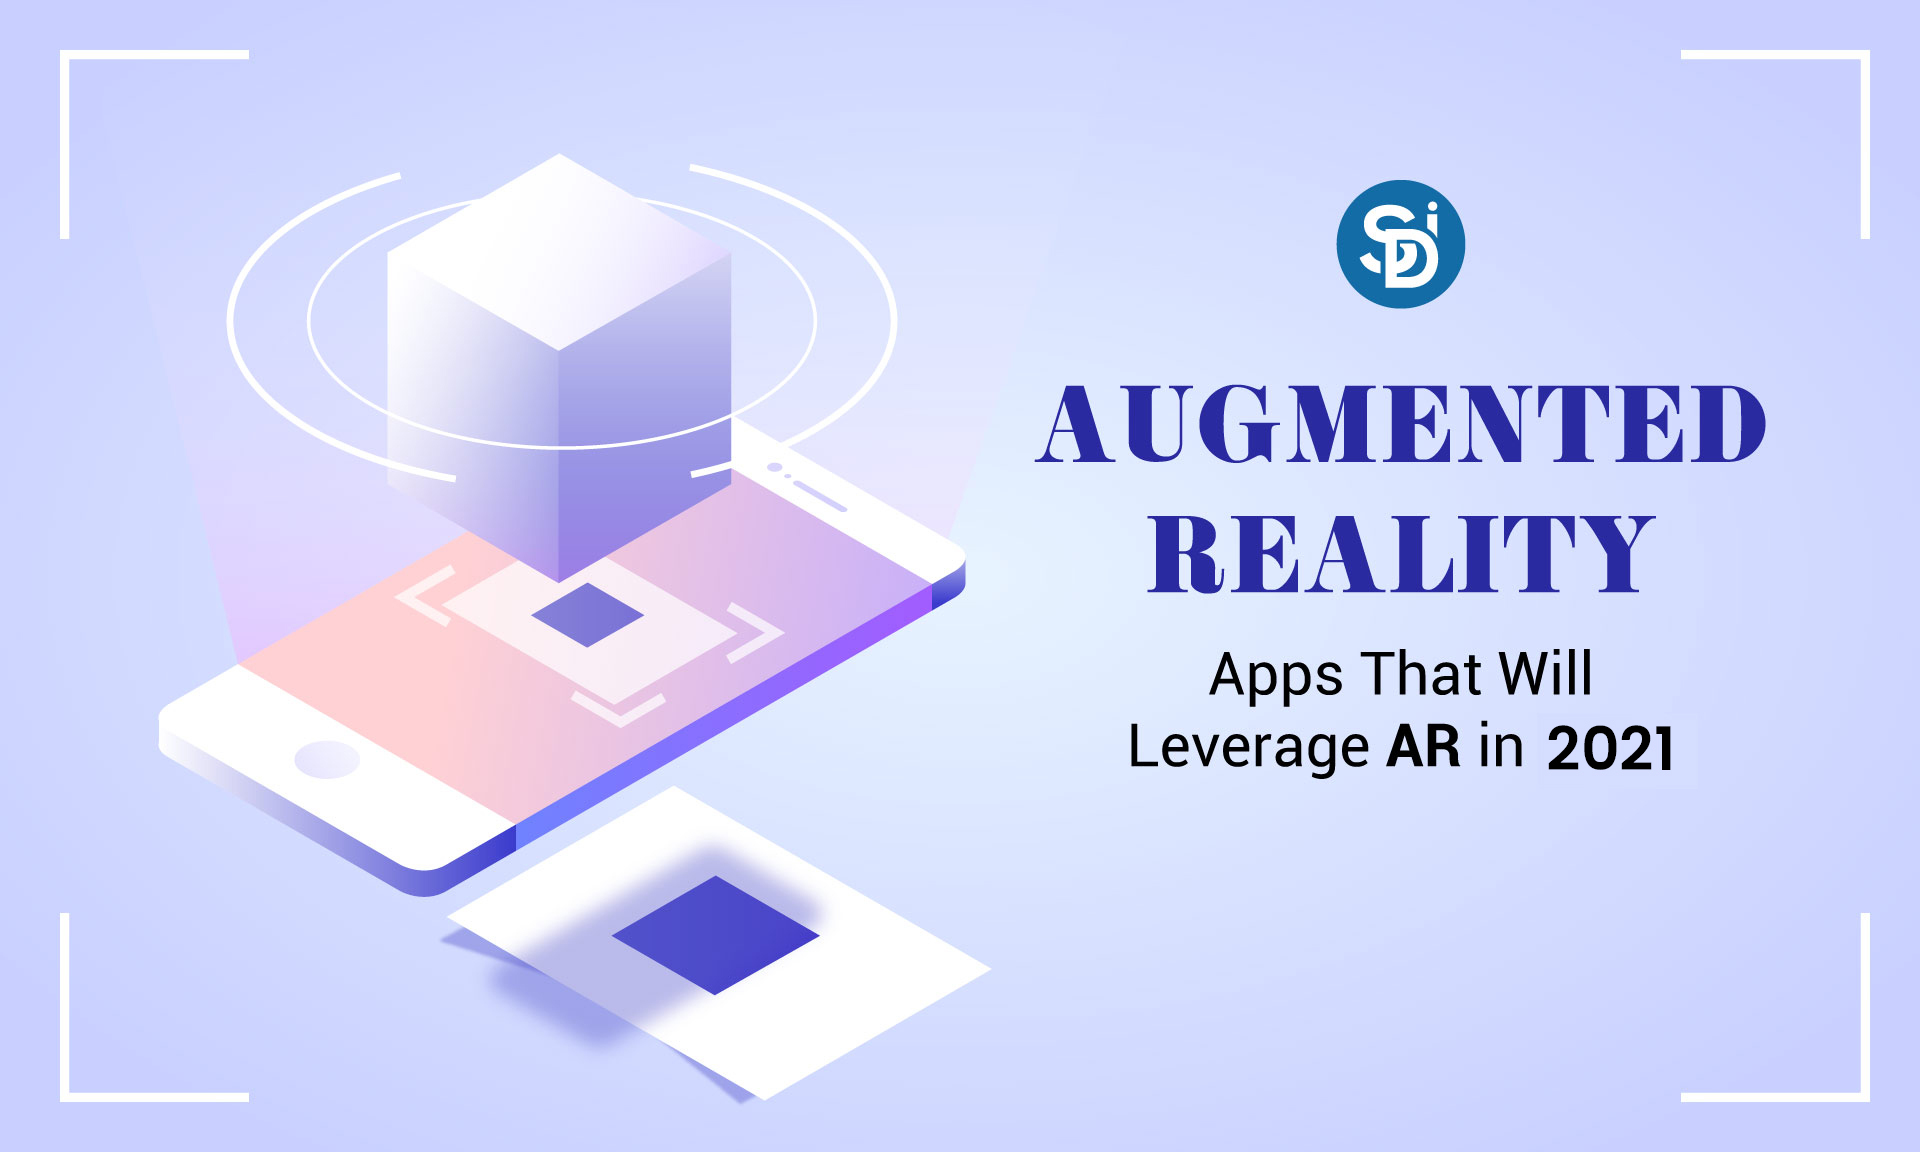 Apps That Will Leverage Augmented Reality